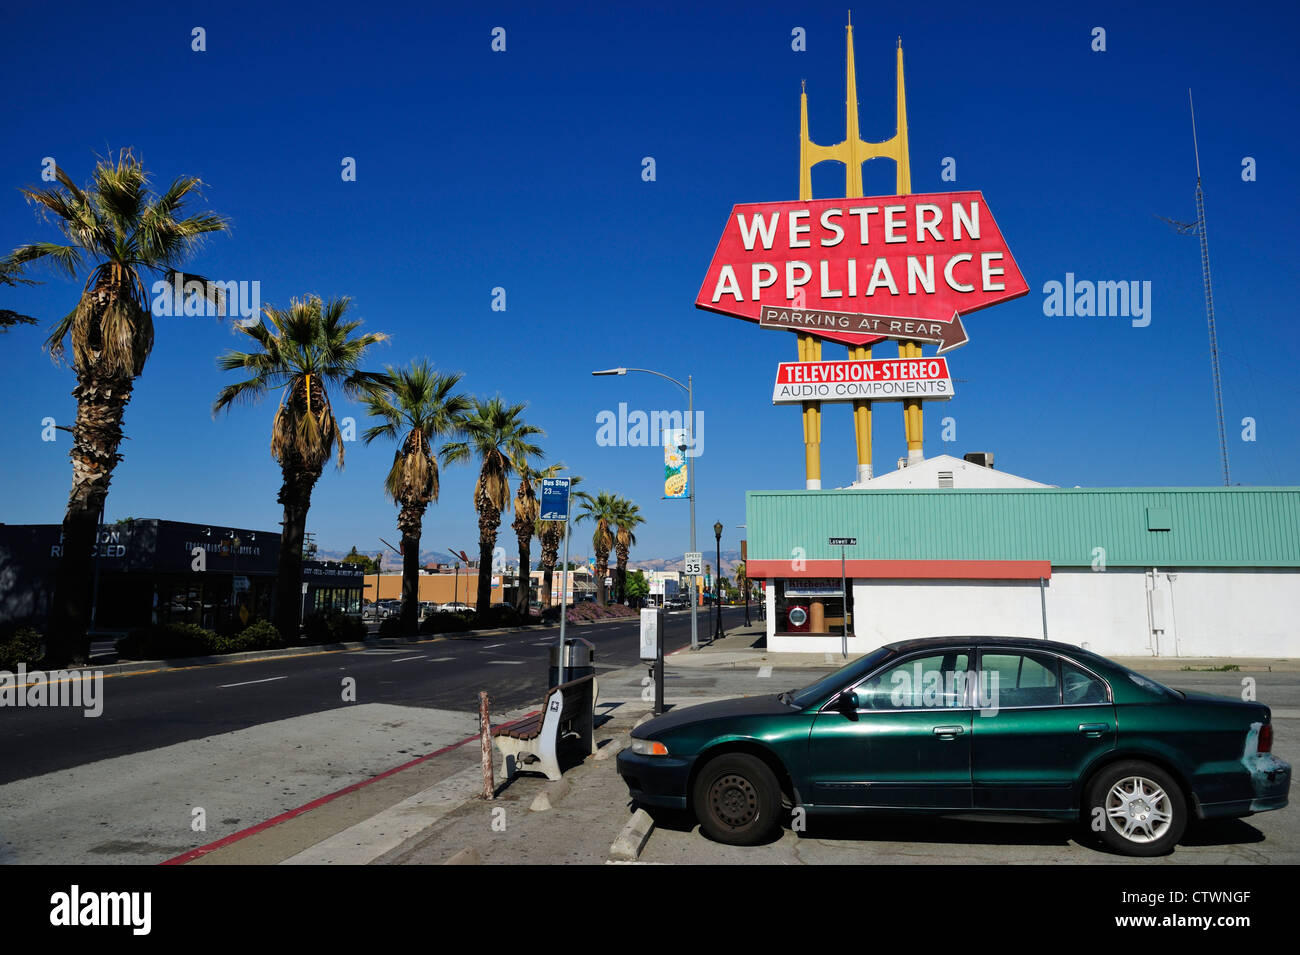 car stereo centrum bremen electrical wiring diagram house ppt discounter stock photos images alamy western appliance store san jose ca image